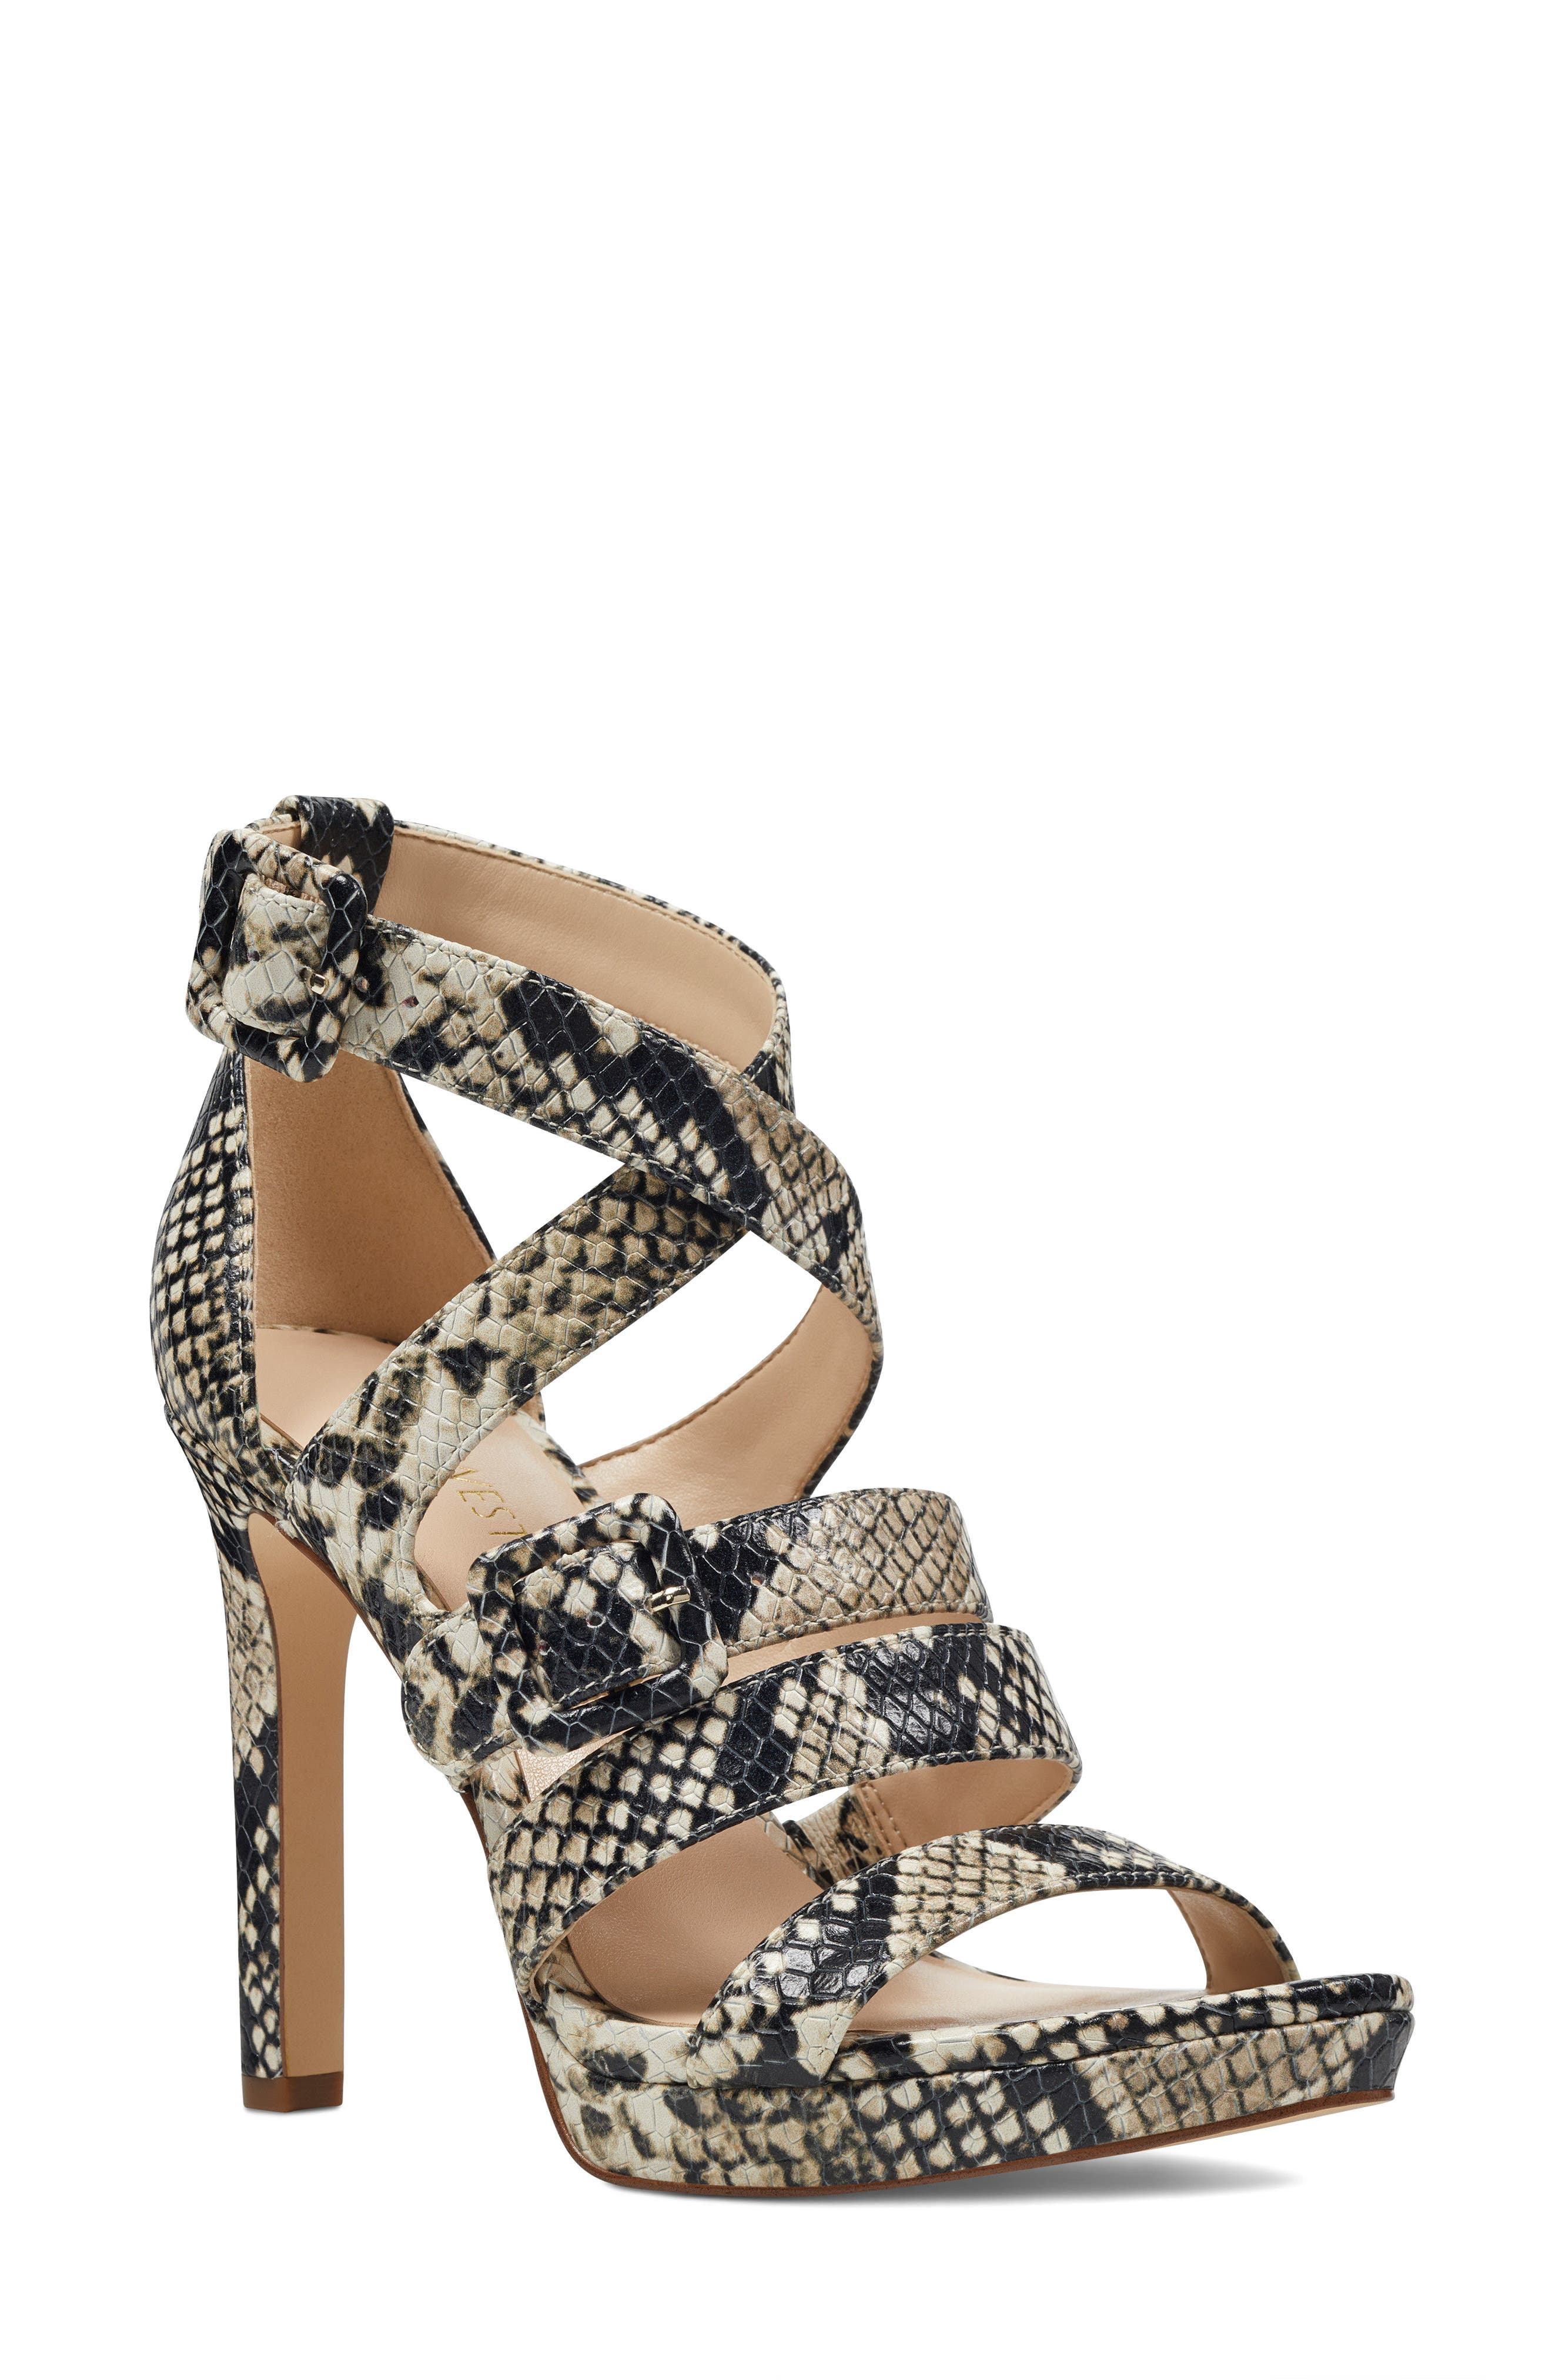 Tarykah Strappy Sandal,                         Main,                         color, 100